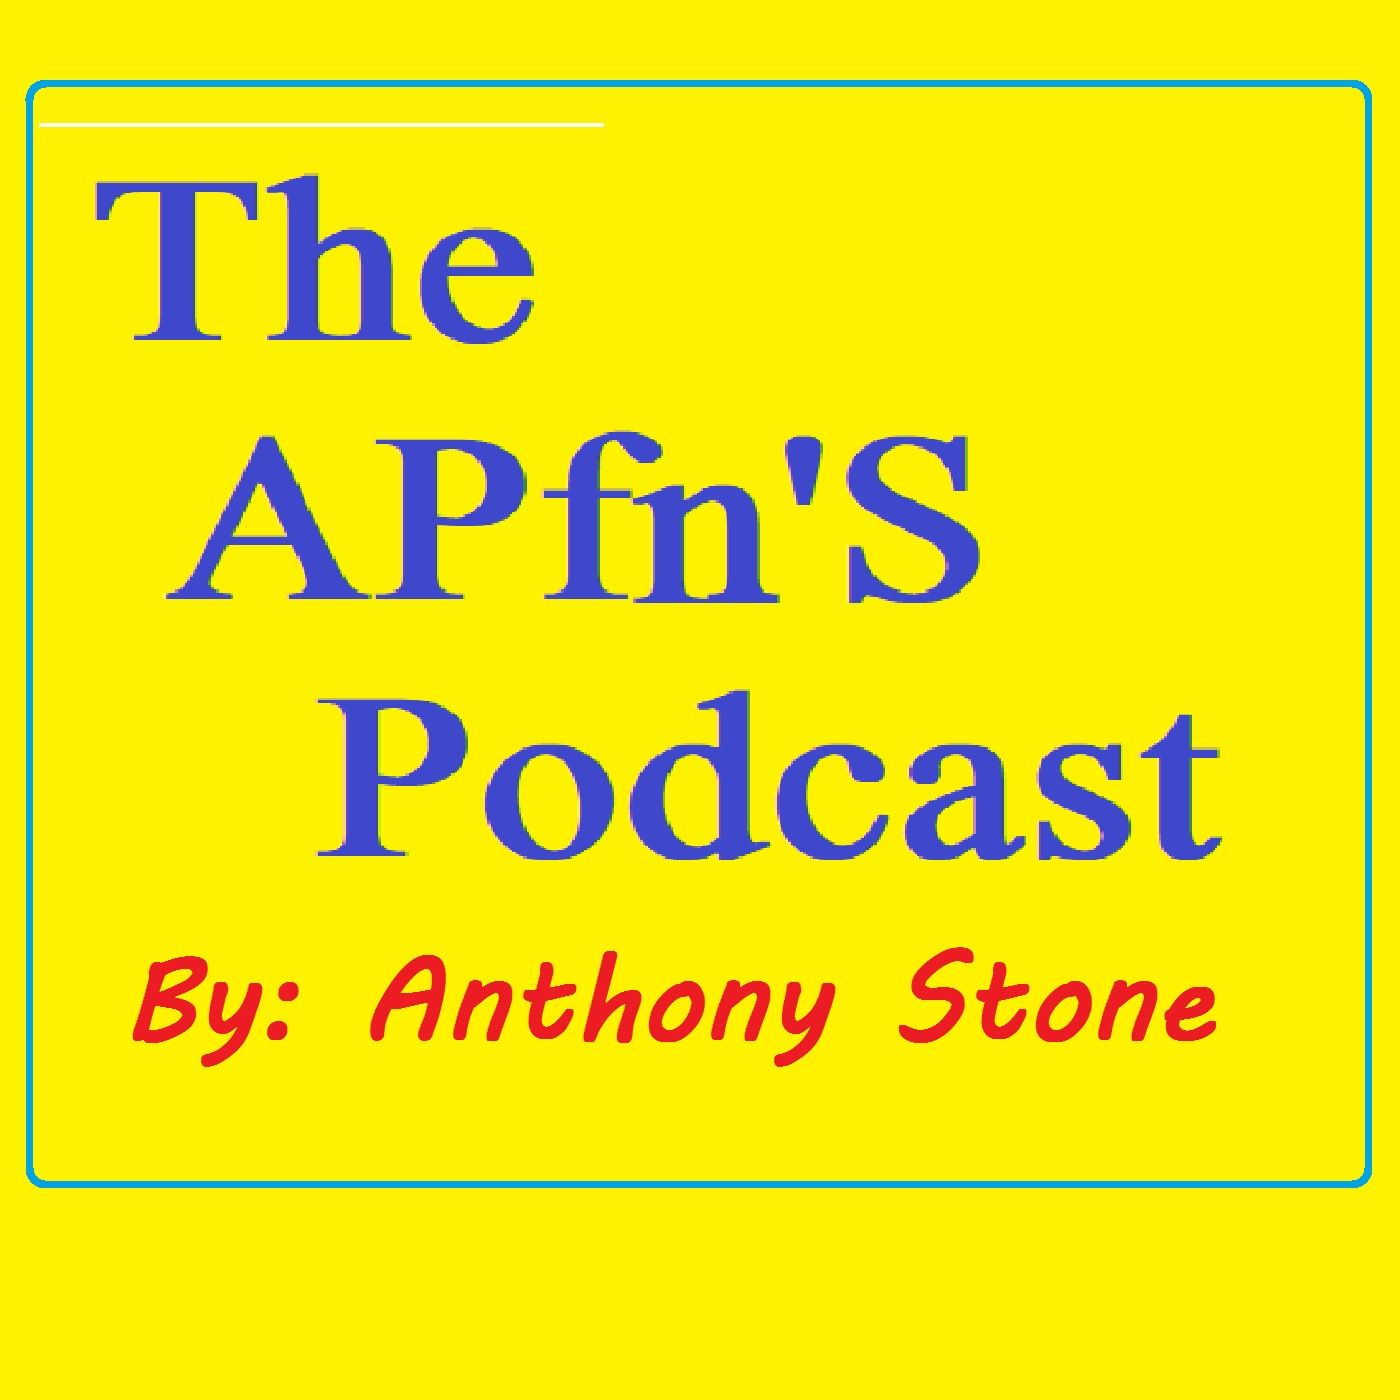 The APfnS Podcast By Anthony Stone